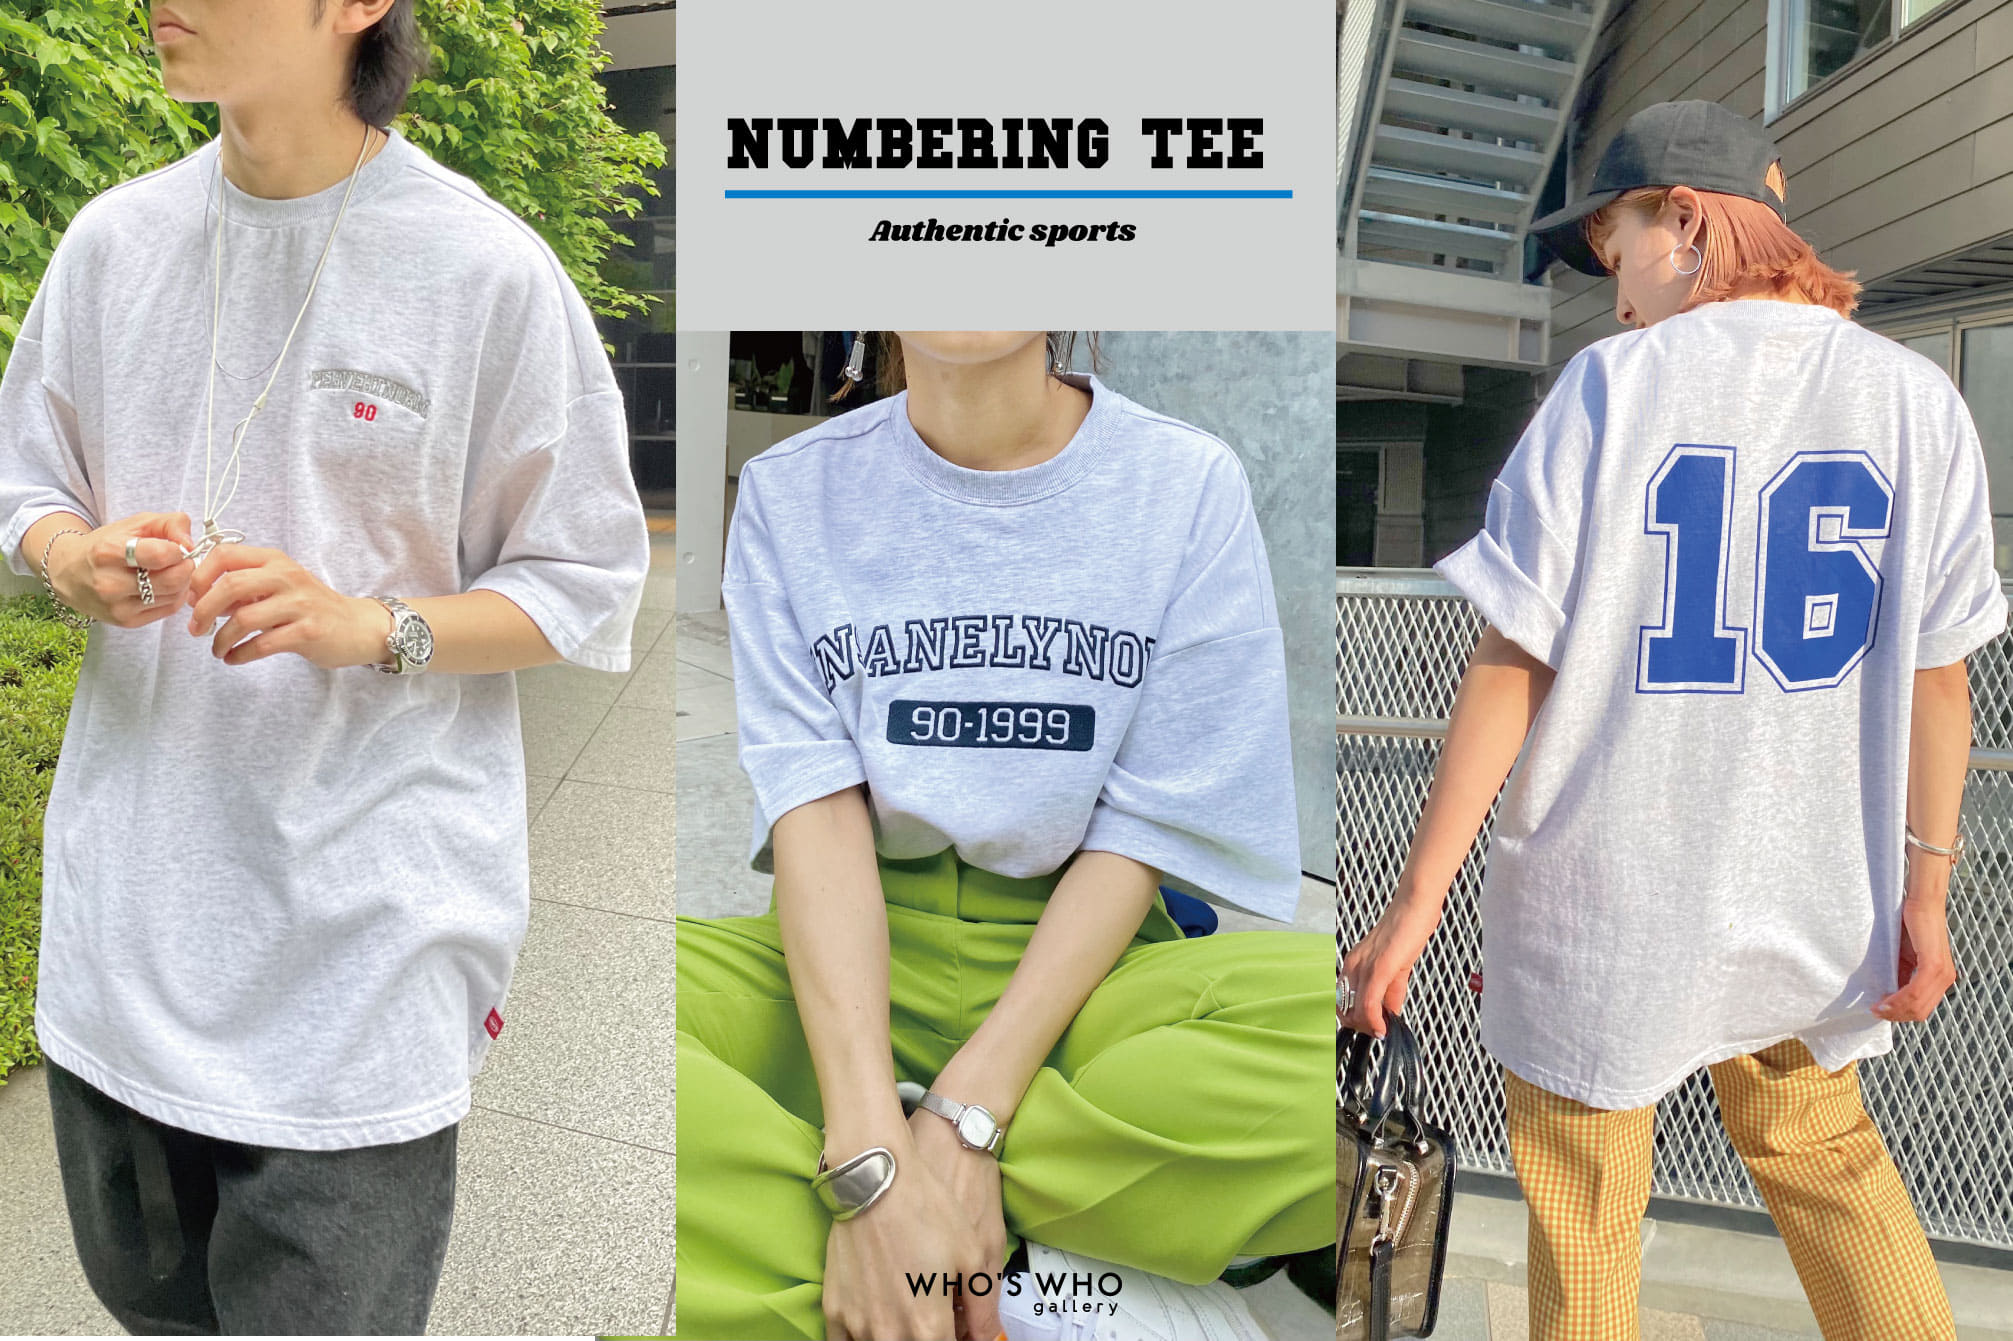 WHO'S WHO gallery 【NUMBERING TEE】